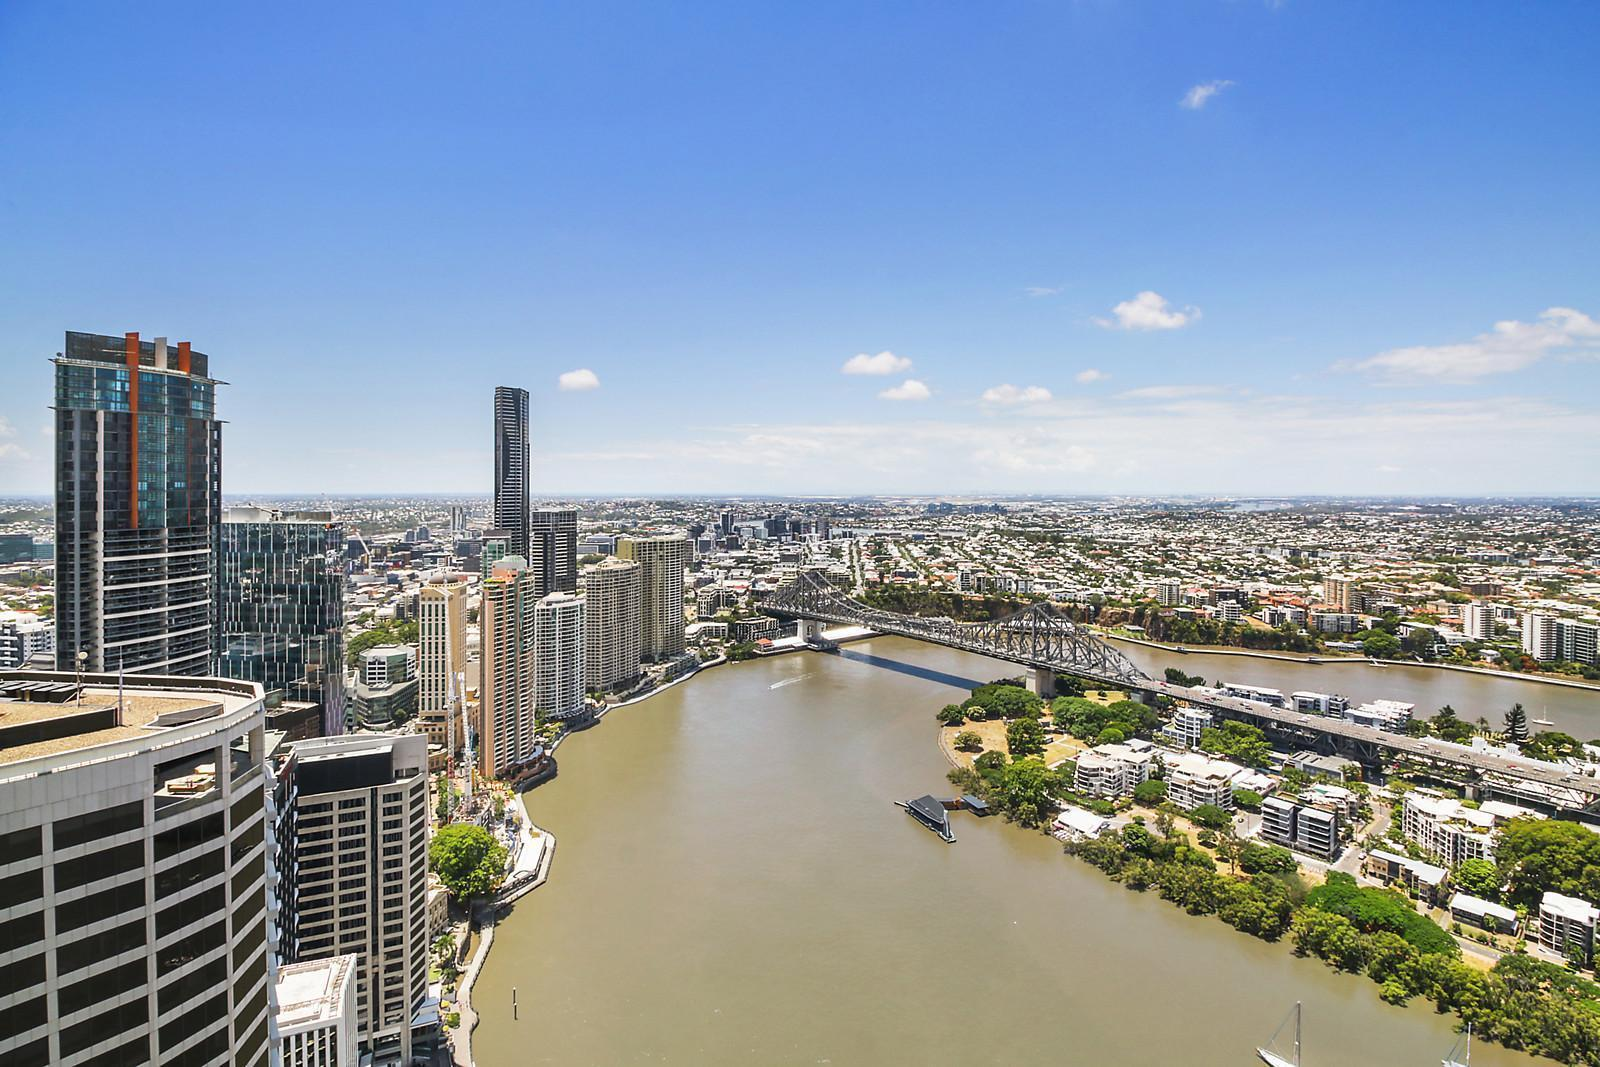 450371 Eagle Street Brisbane City Qld 4000 Apartment For Sale - Apartment-at-eagle-st-brisbane